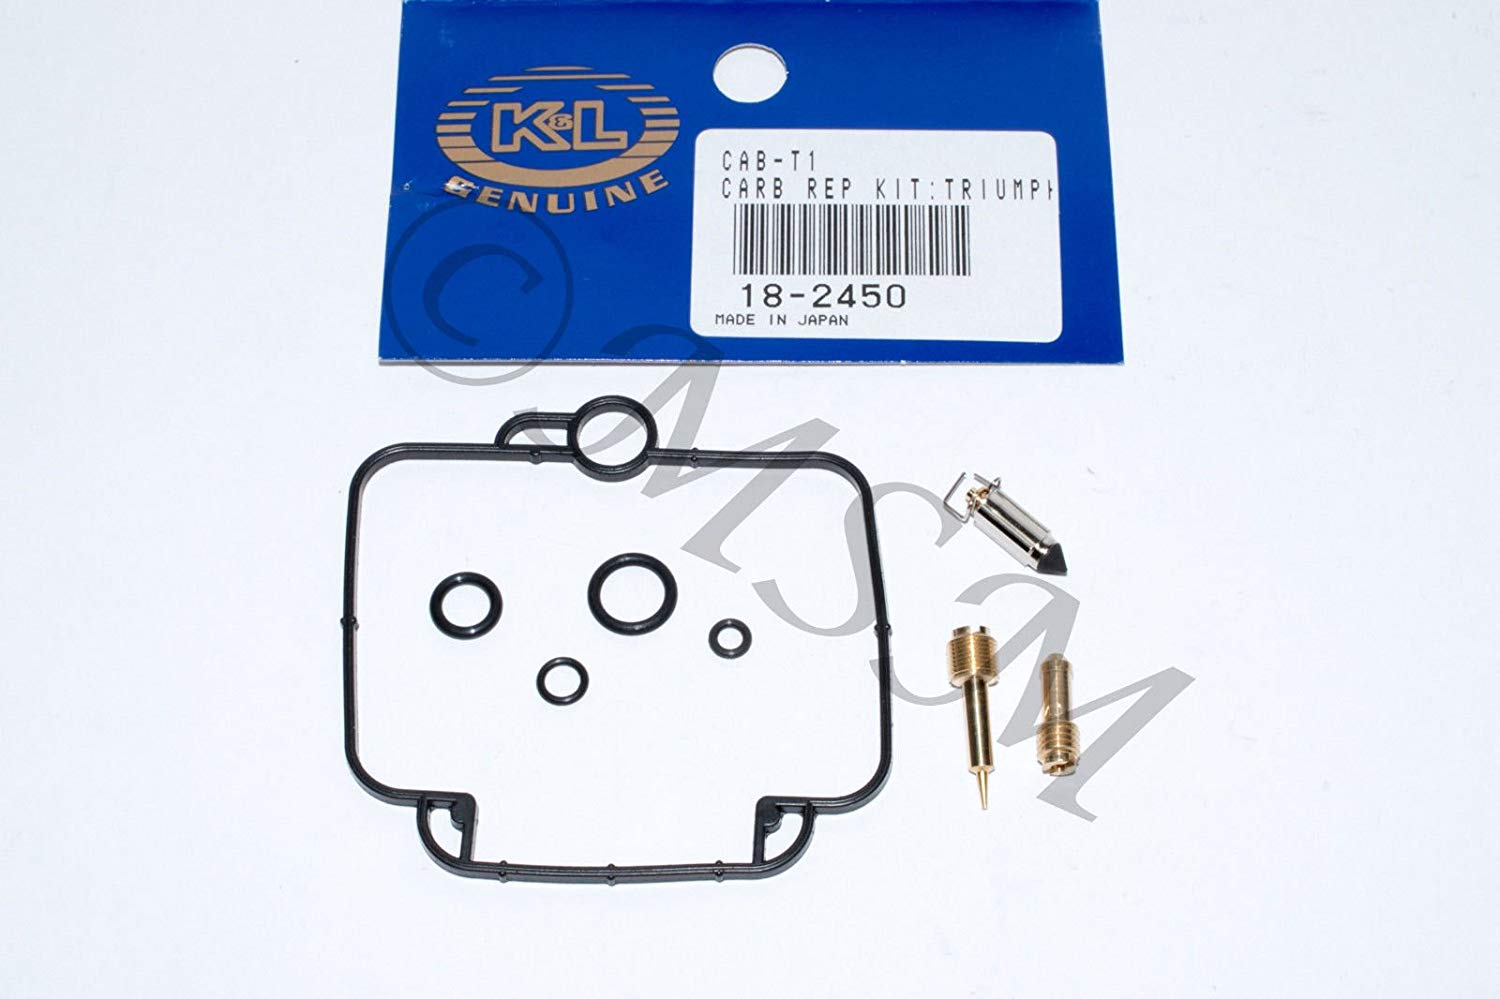 K&L Supply Economy Carburetor Repair Kit 182450